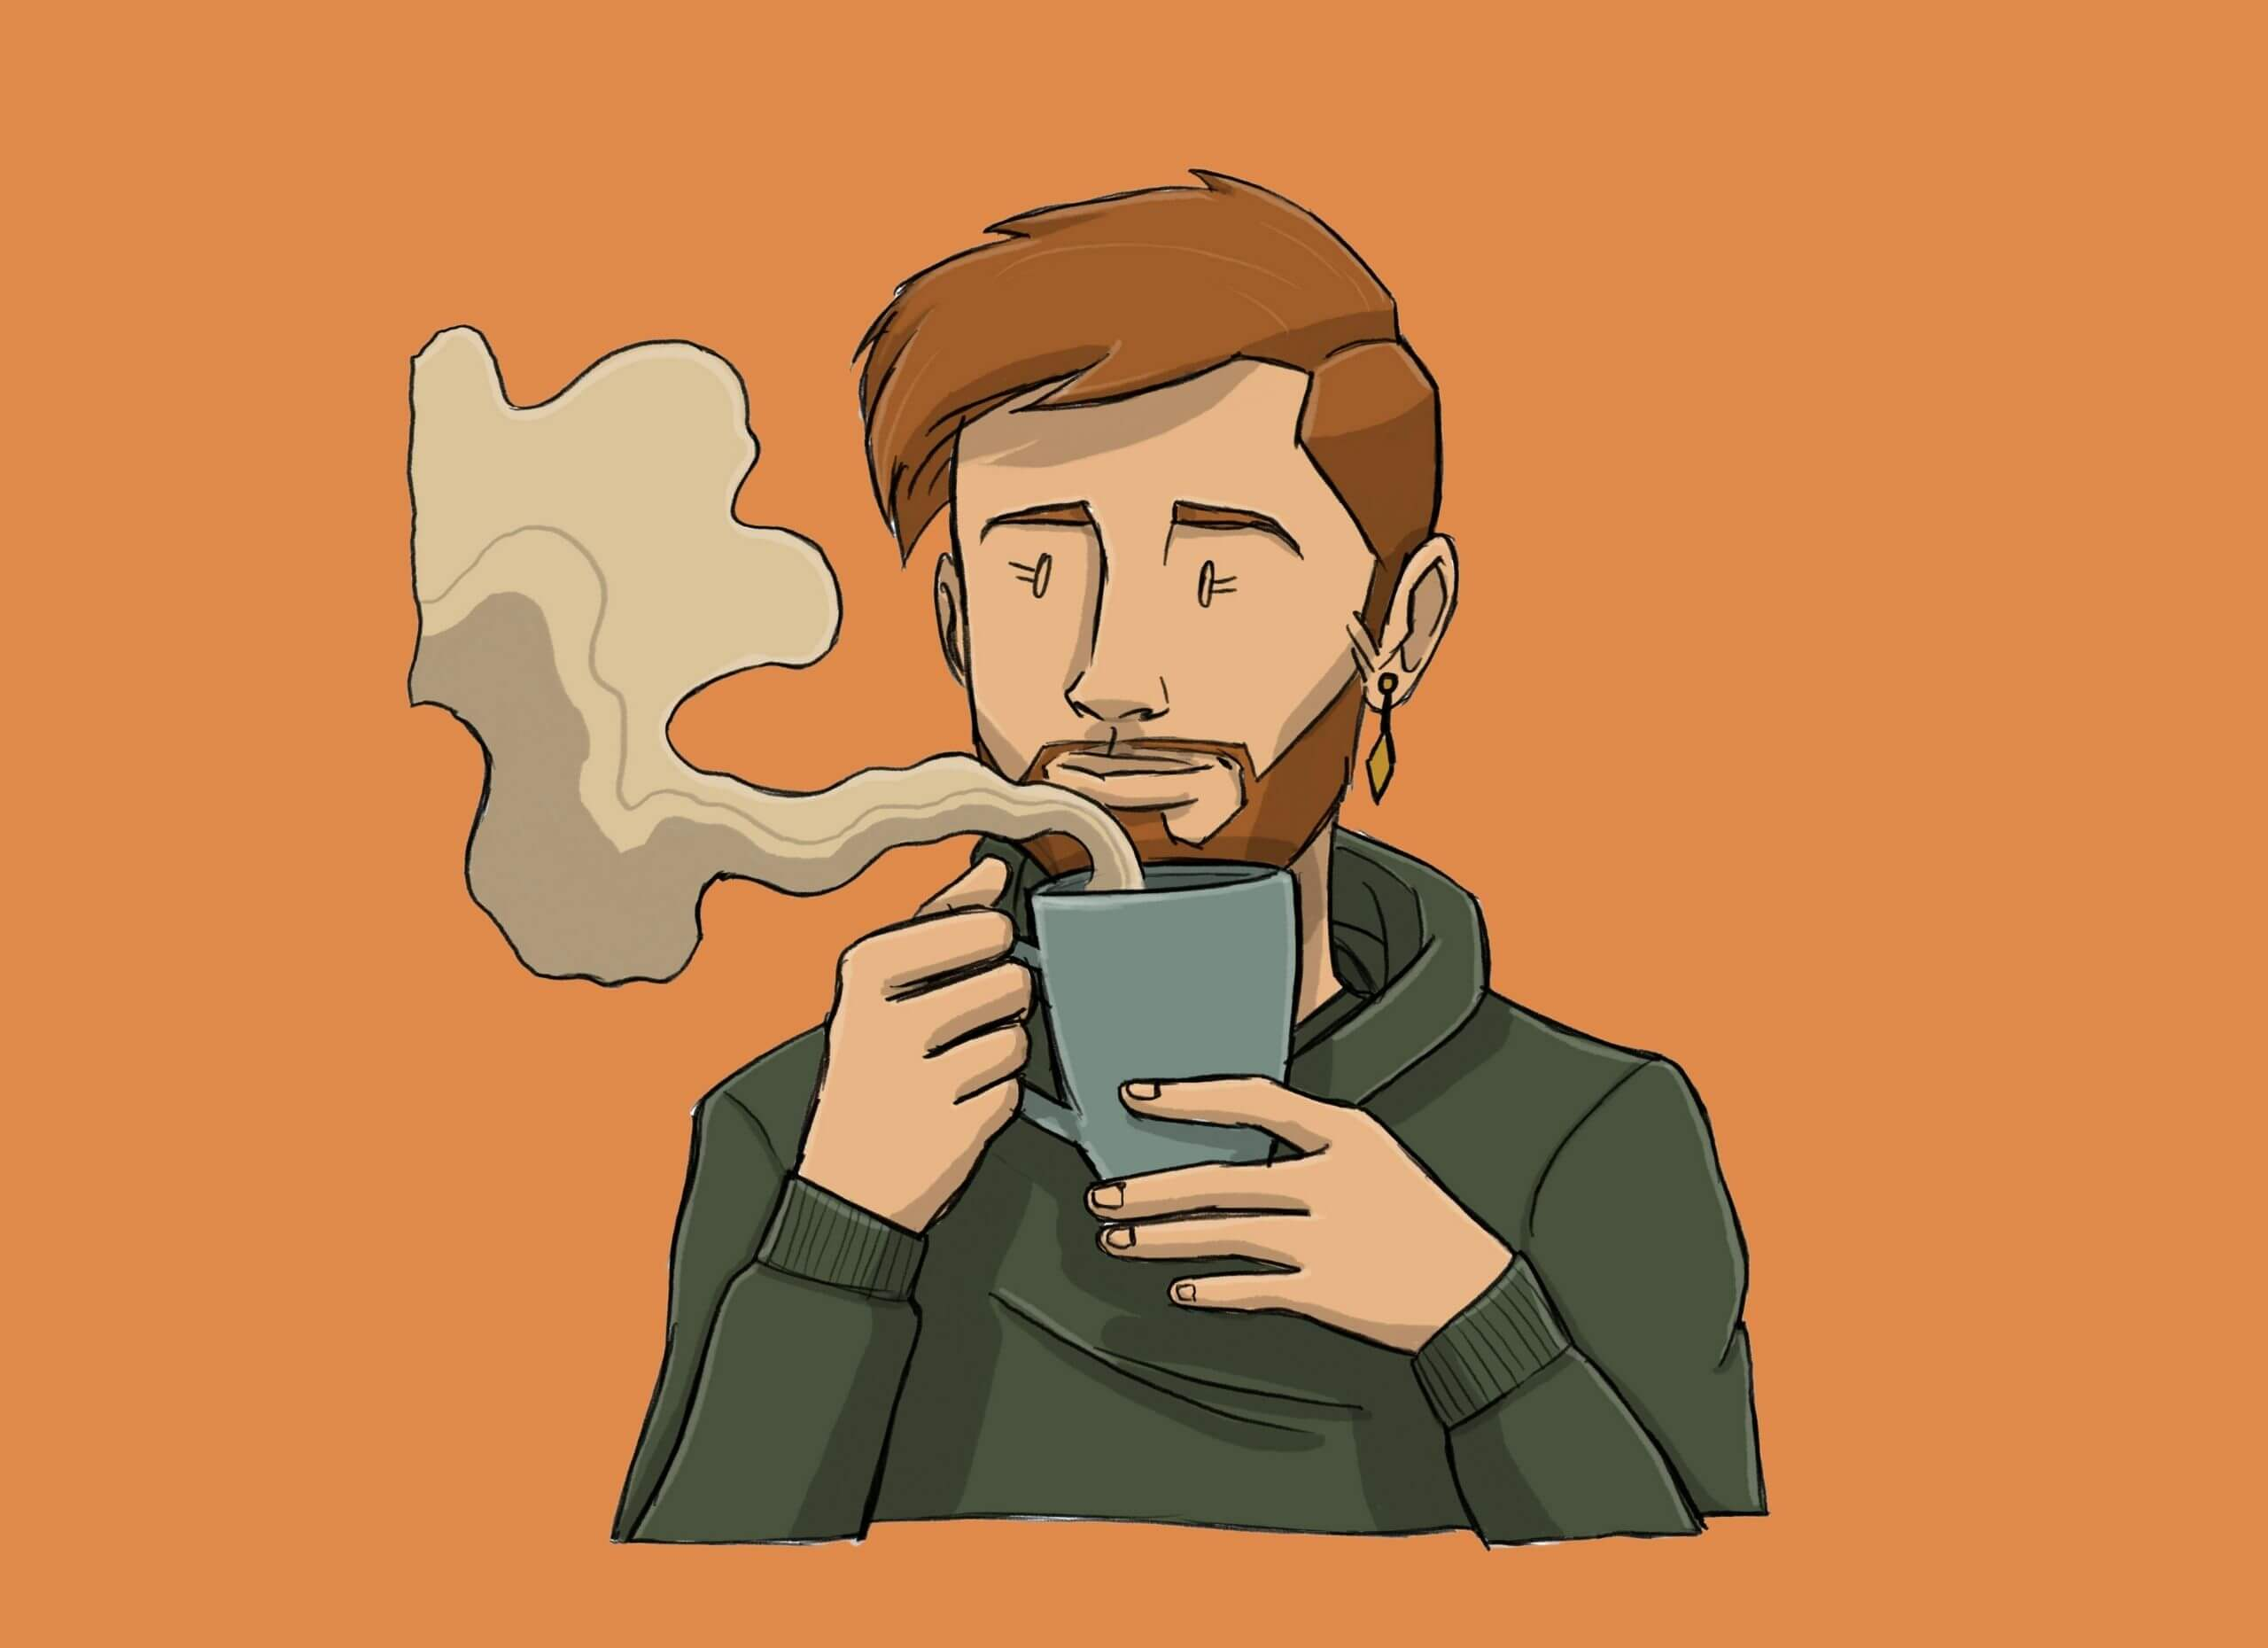 this is a drawing of a binary person drinking coffee